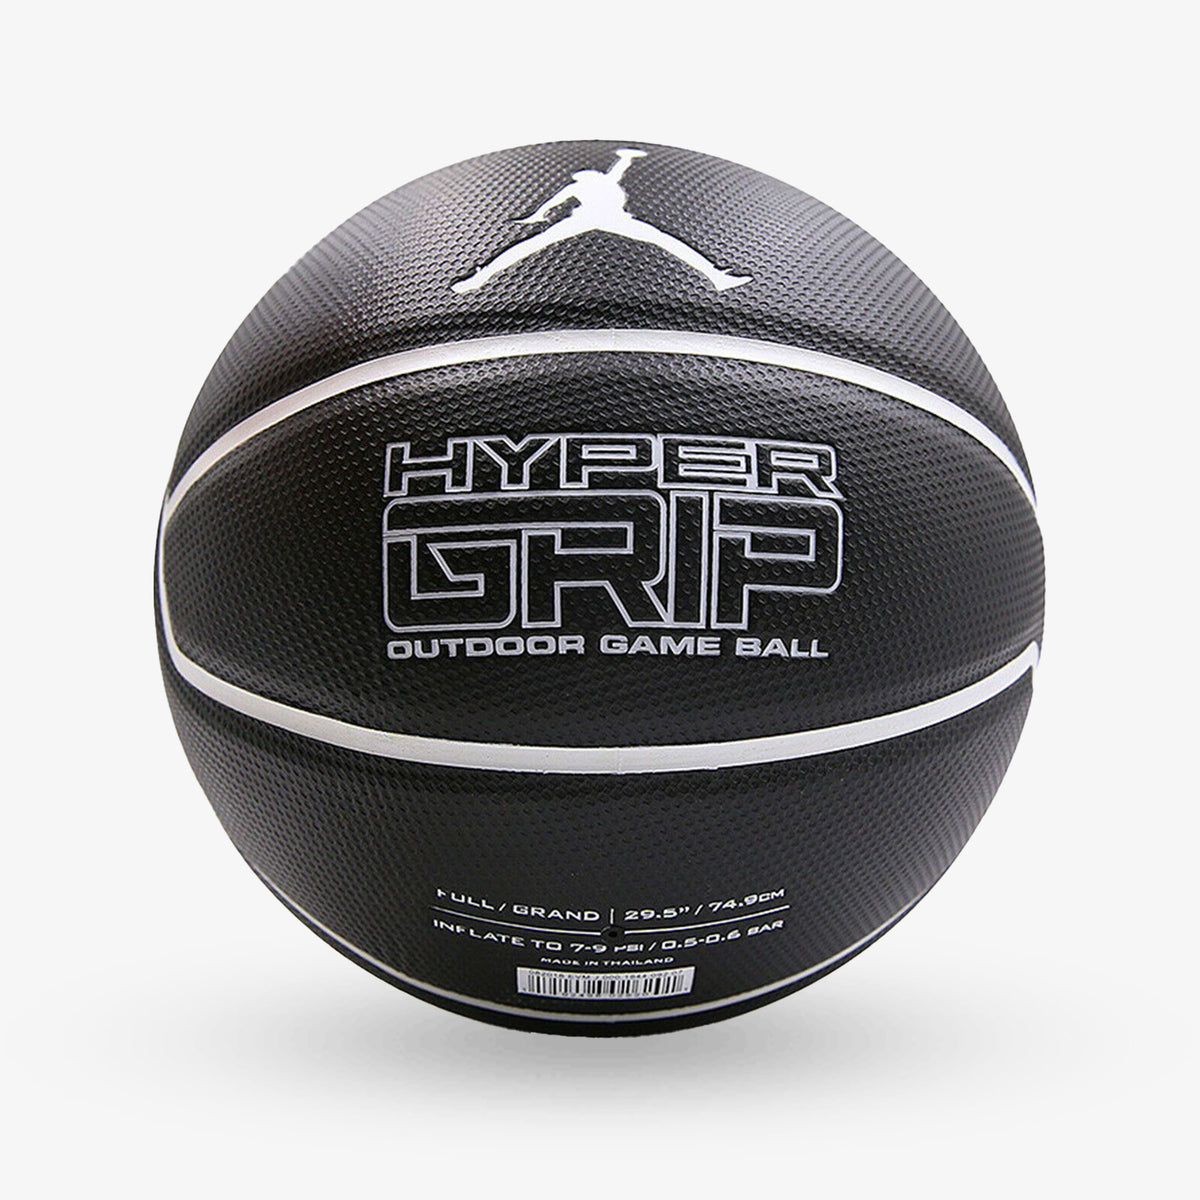 Jordan Hyper Grip Basketball - Black - Size 7